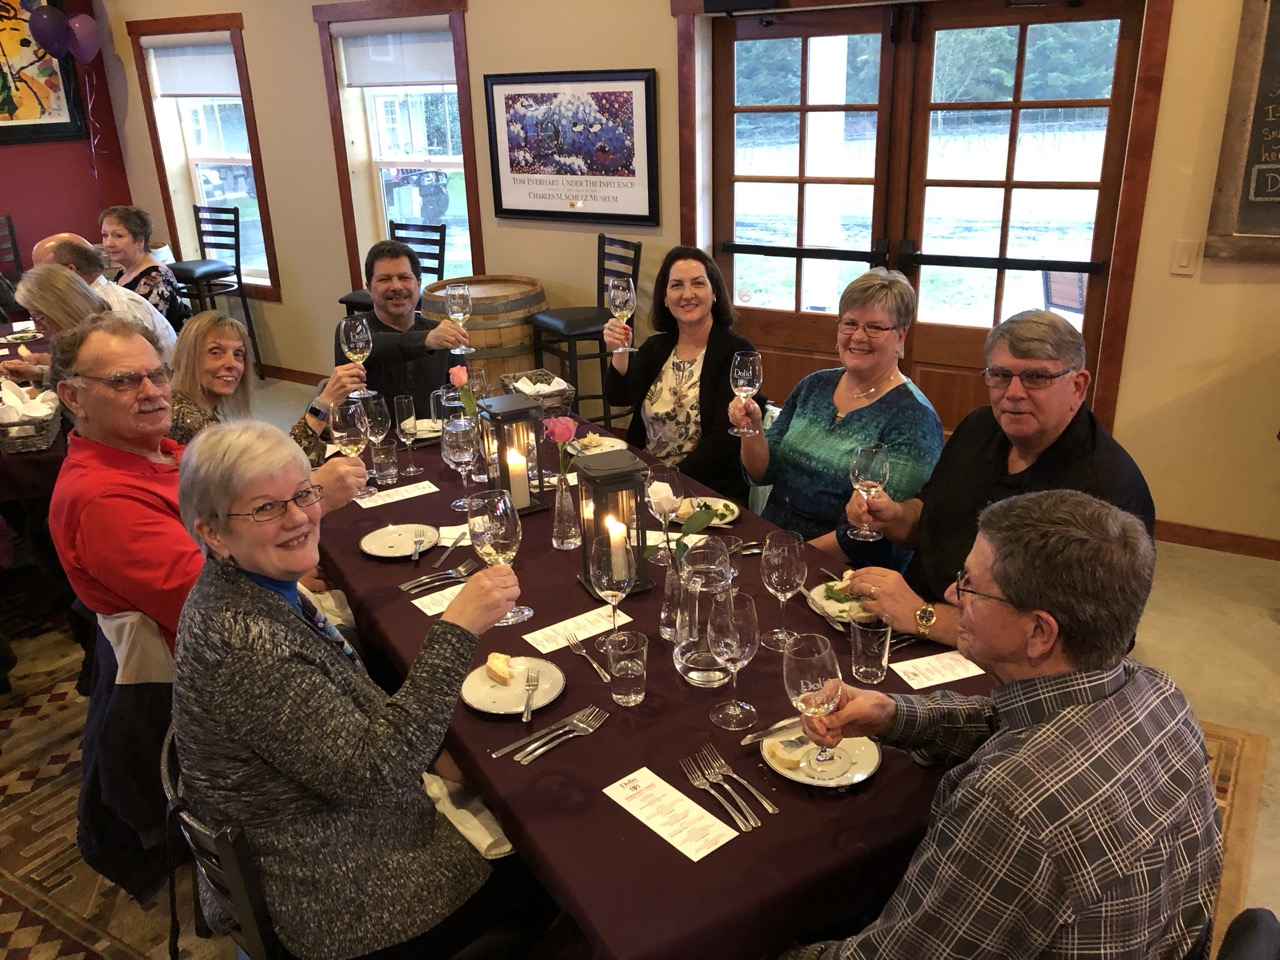 April 13, 2019 WInemaker Dinner at Dolio Winery